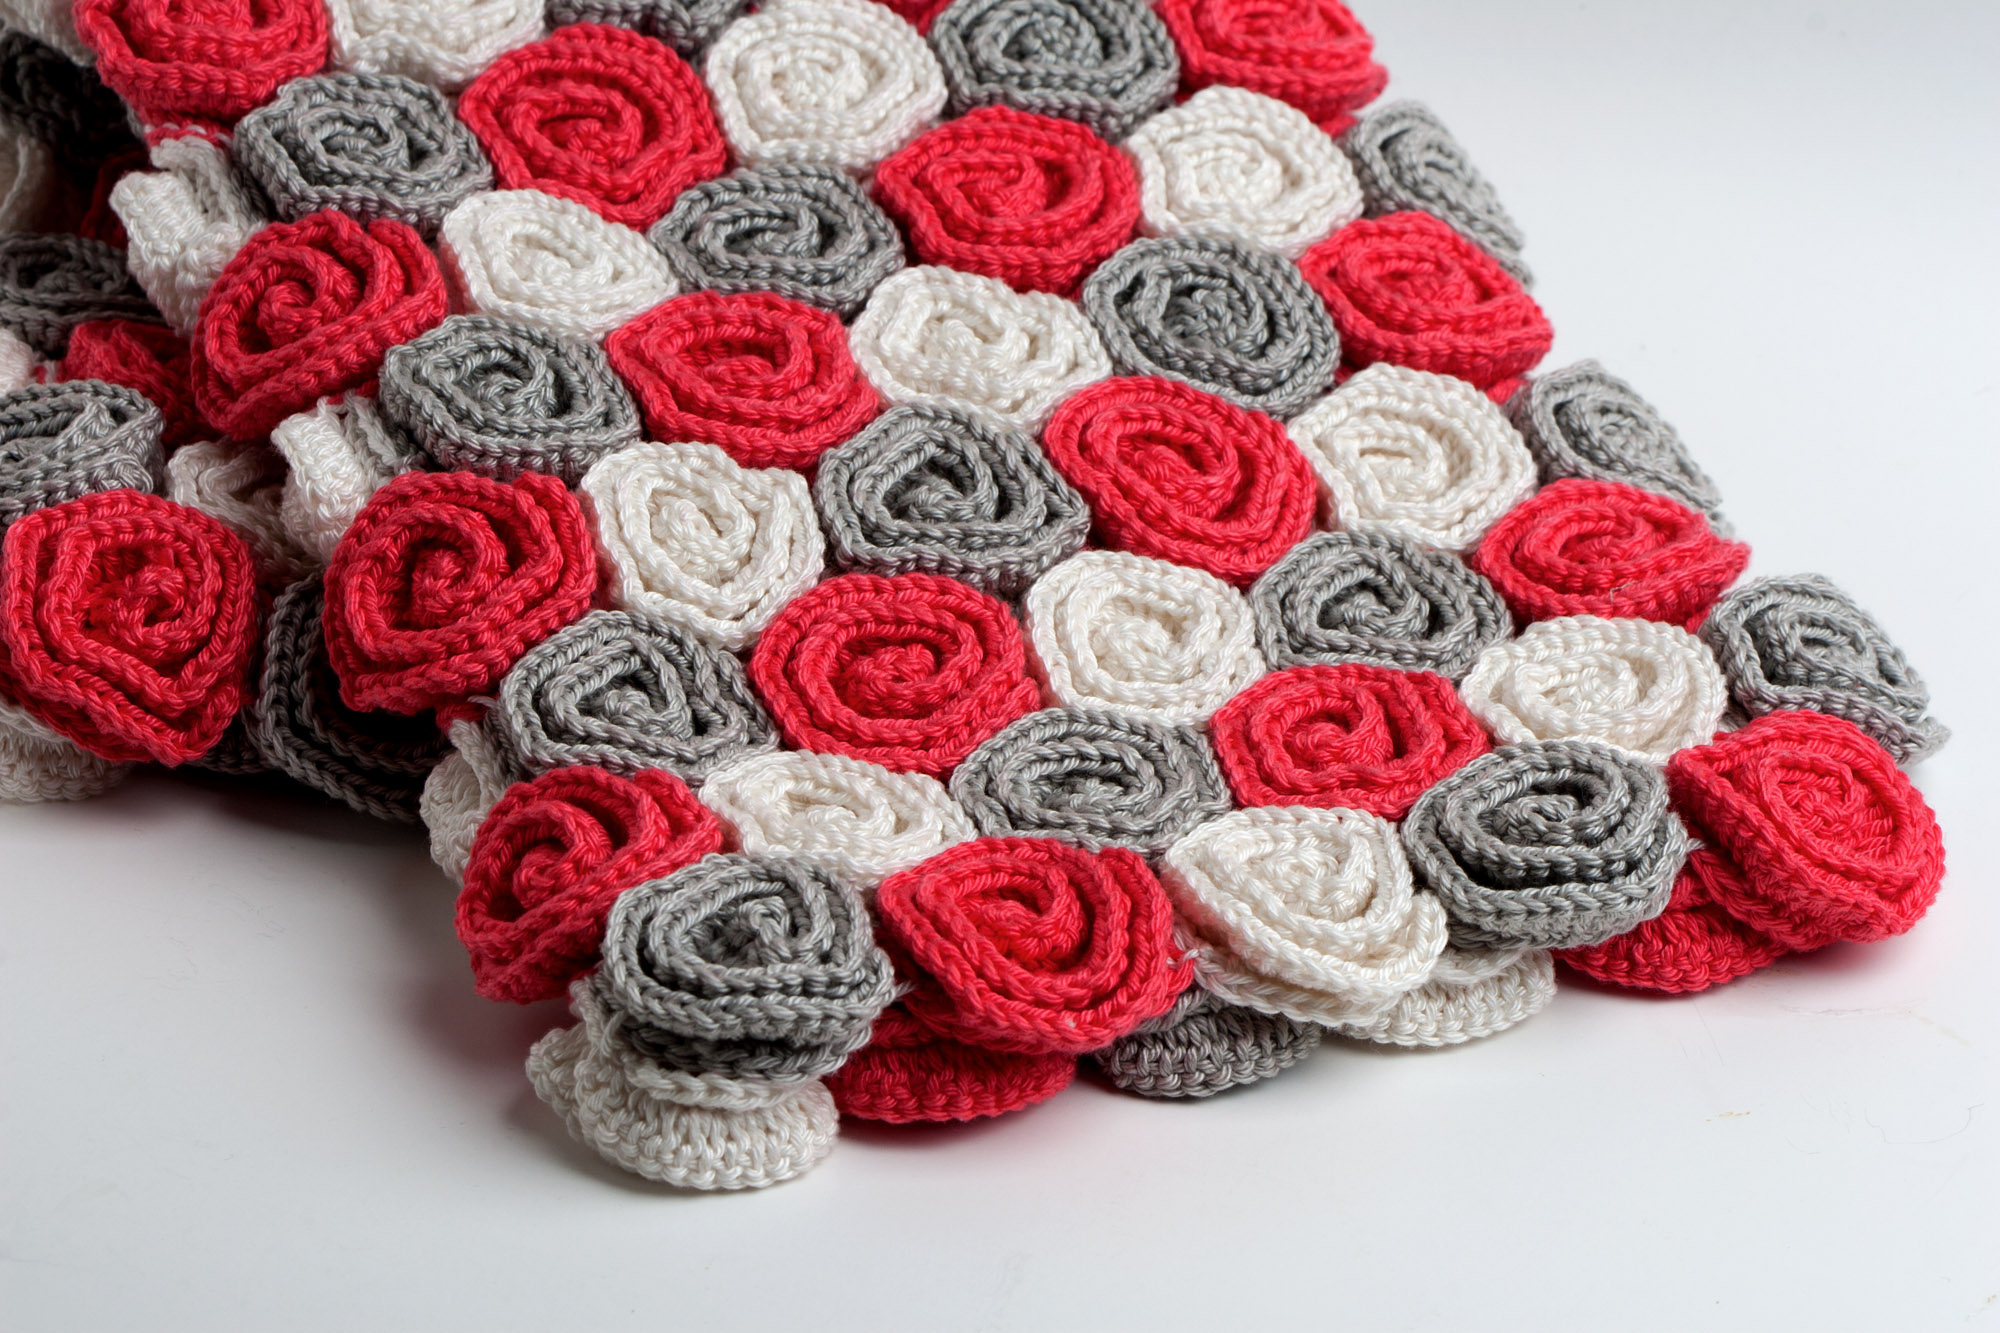 Crochet Yarn : Crochet Pattern Rose Field - Yarn Twist